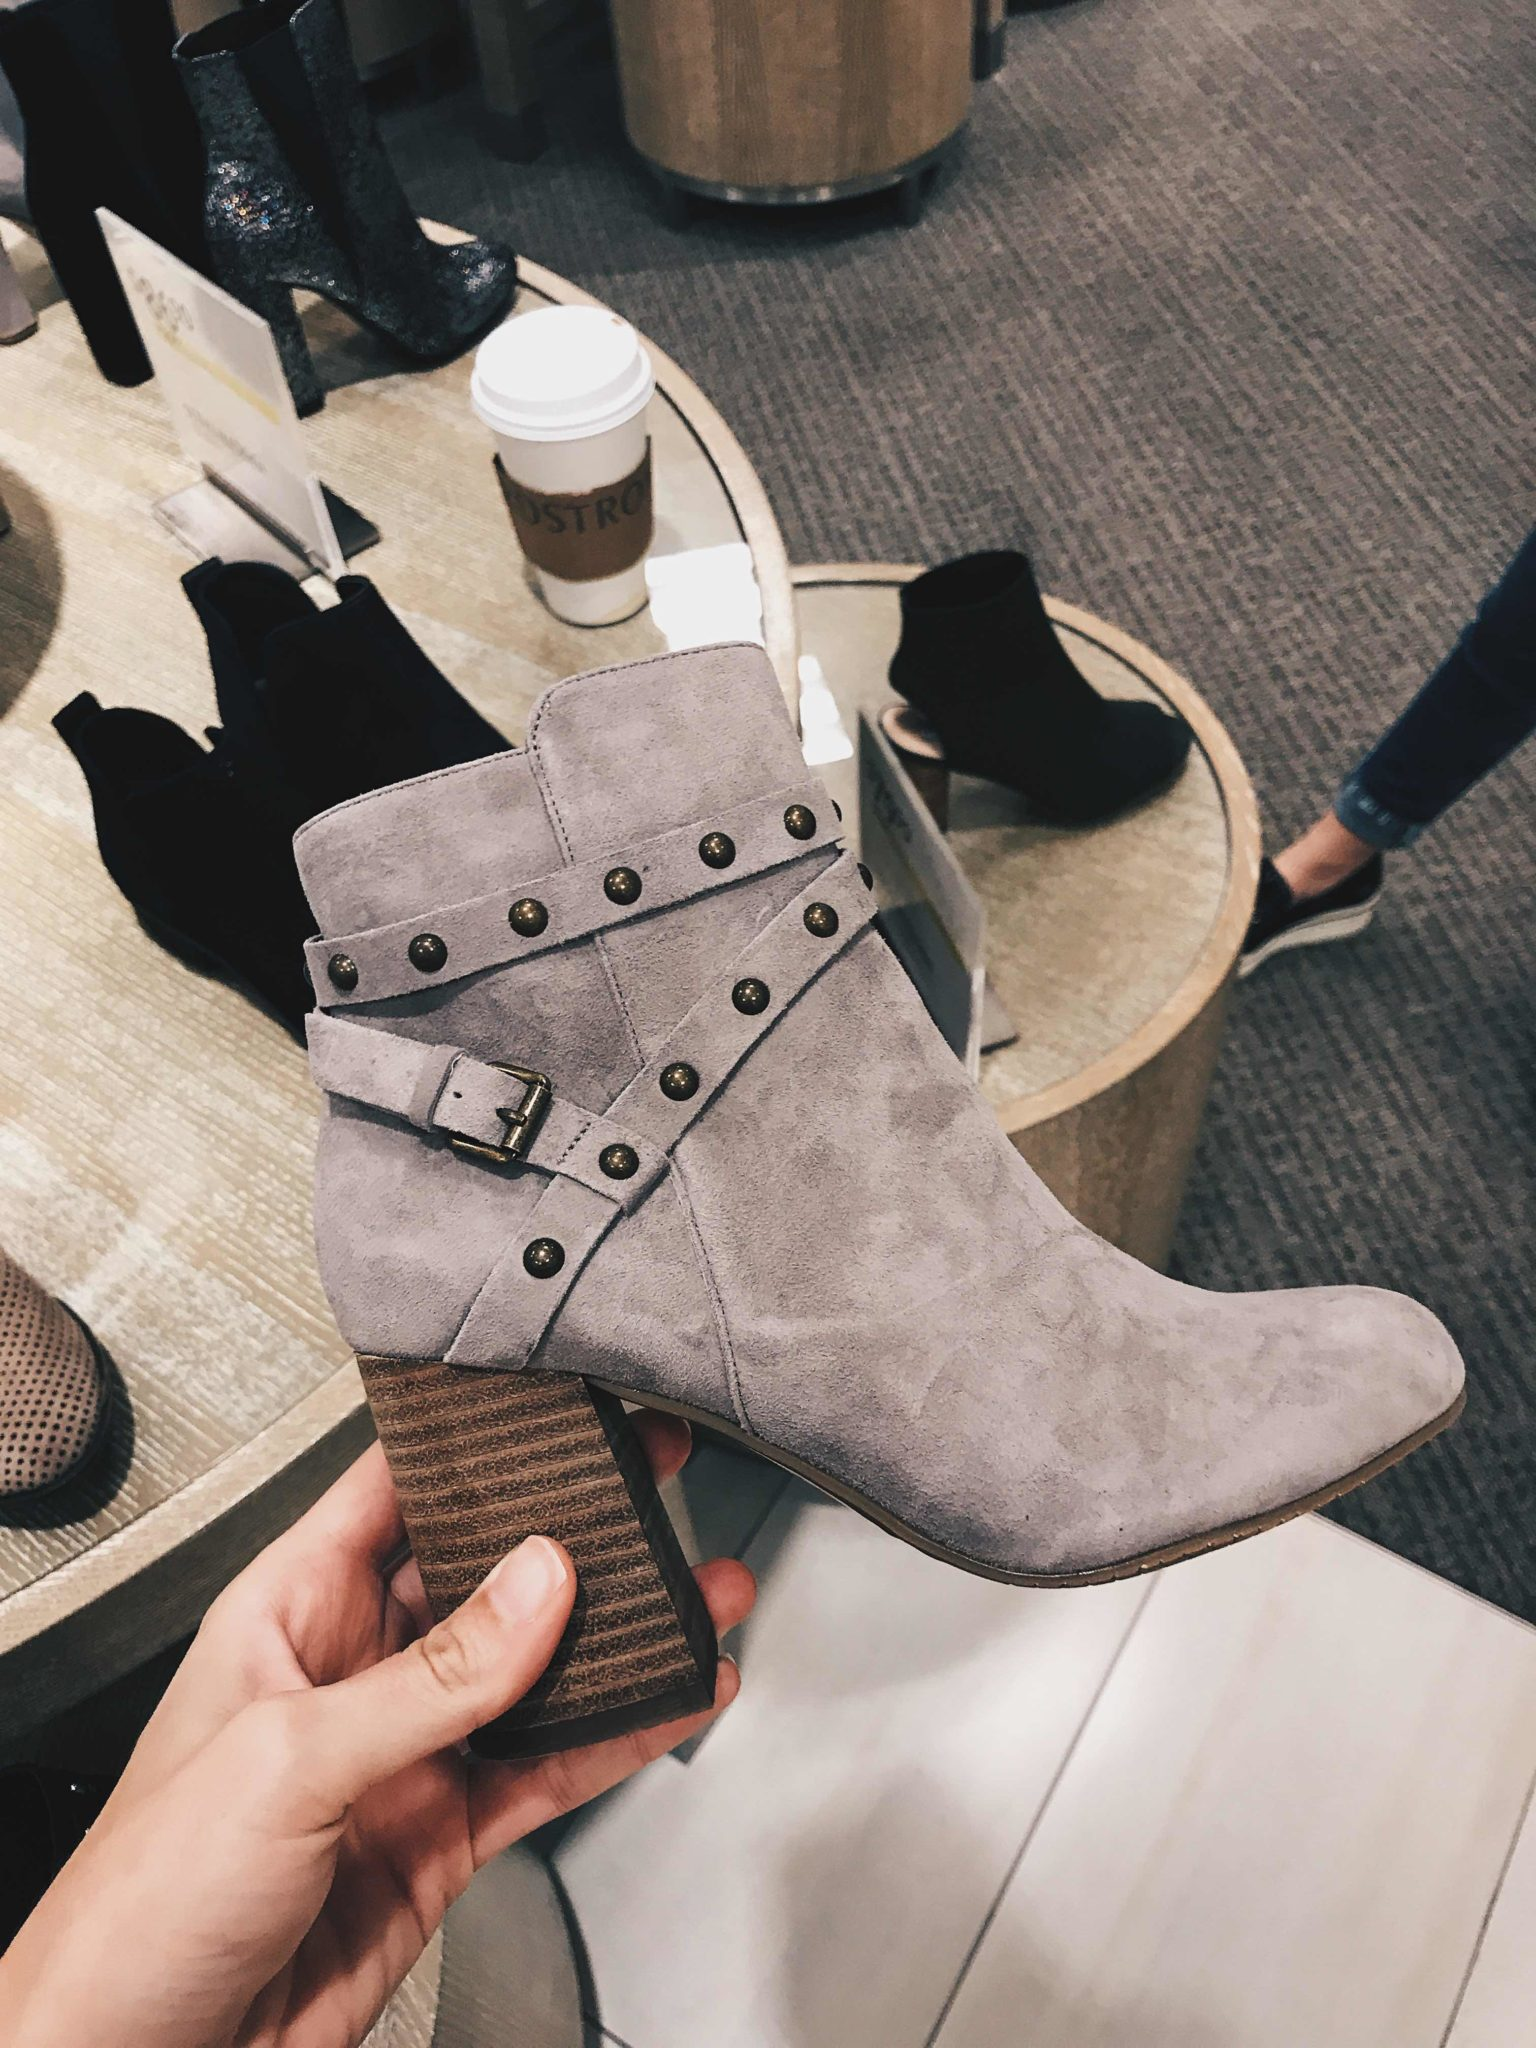 Austin Blogger DTKAustin is sharing her top must-have pieces from the 2017 Nordstrom Anniversary Sale. Suede studded booties under $100 | nordstrom sale must haves | what to buy from the nordstrom anniversary sale || Dressed to Kill